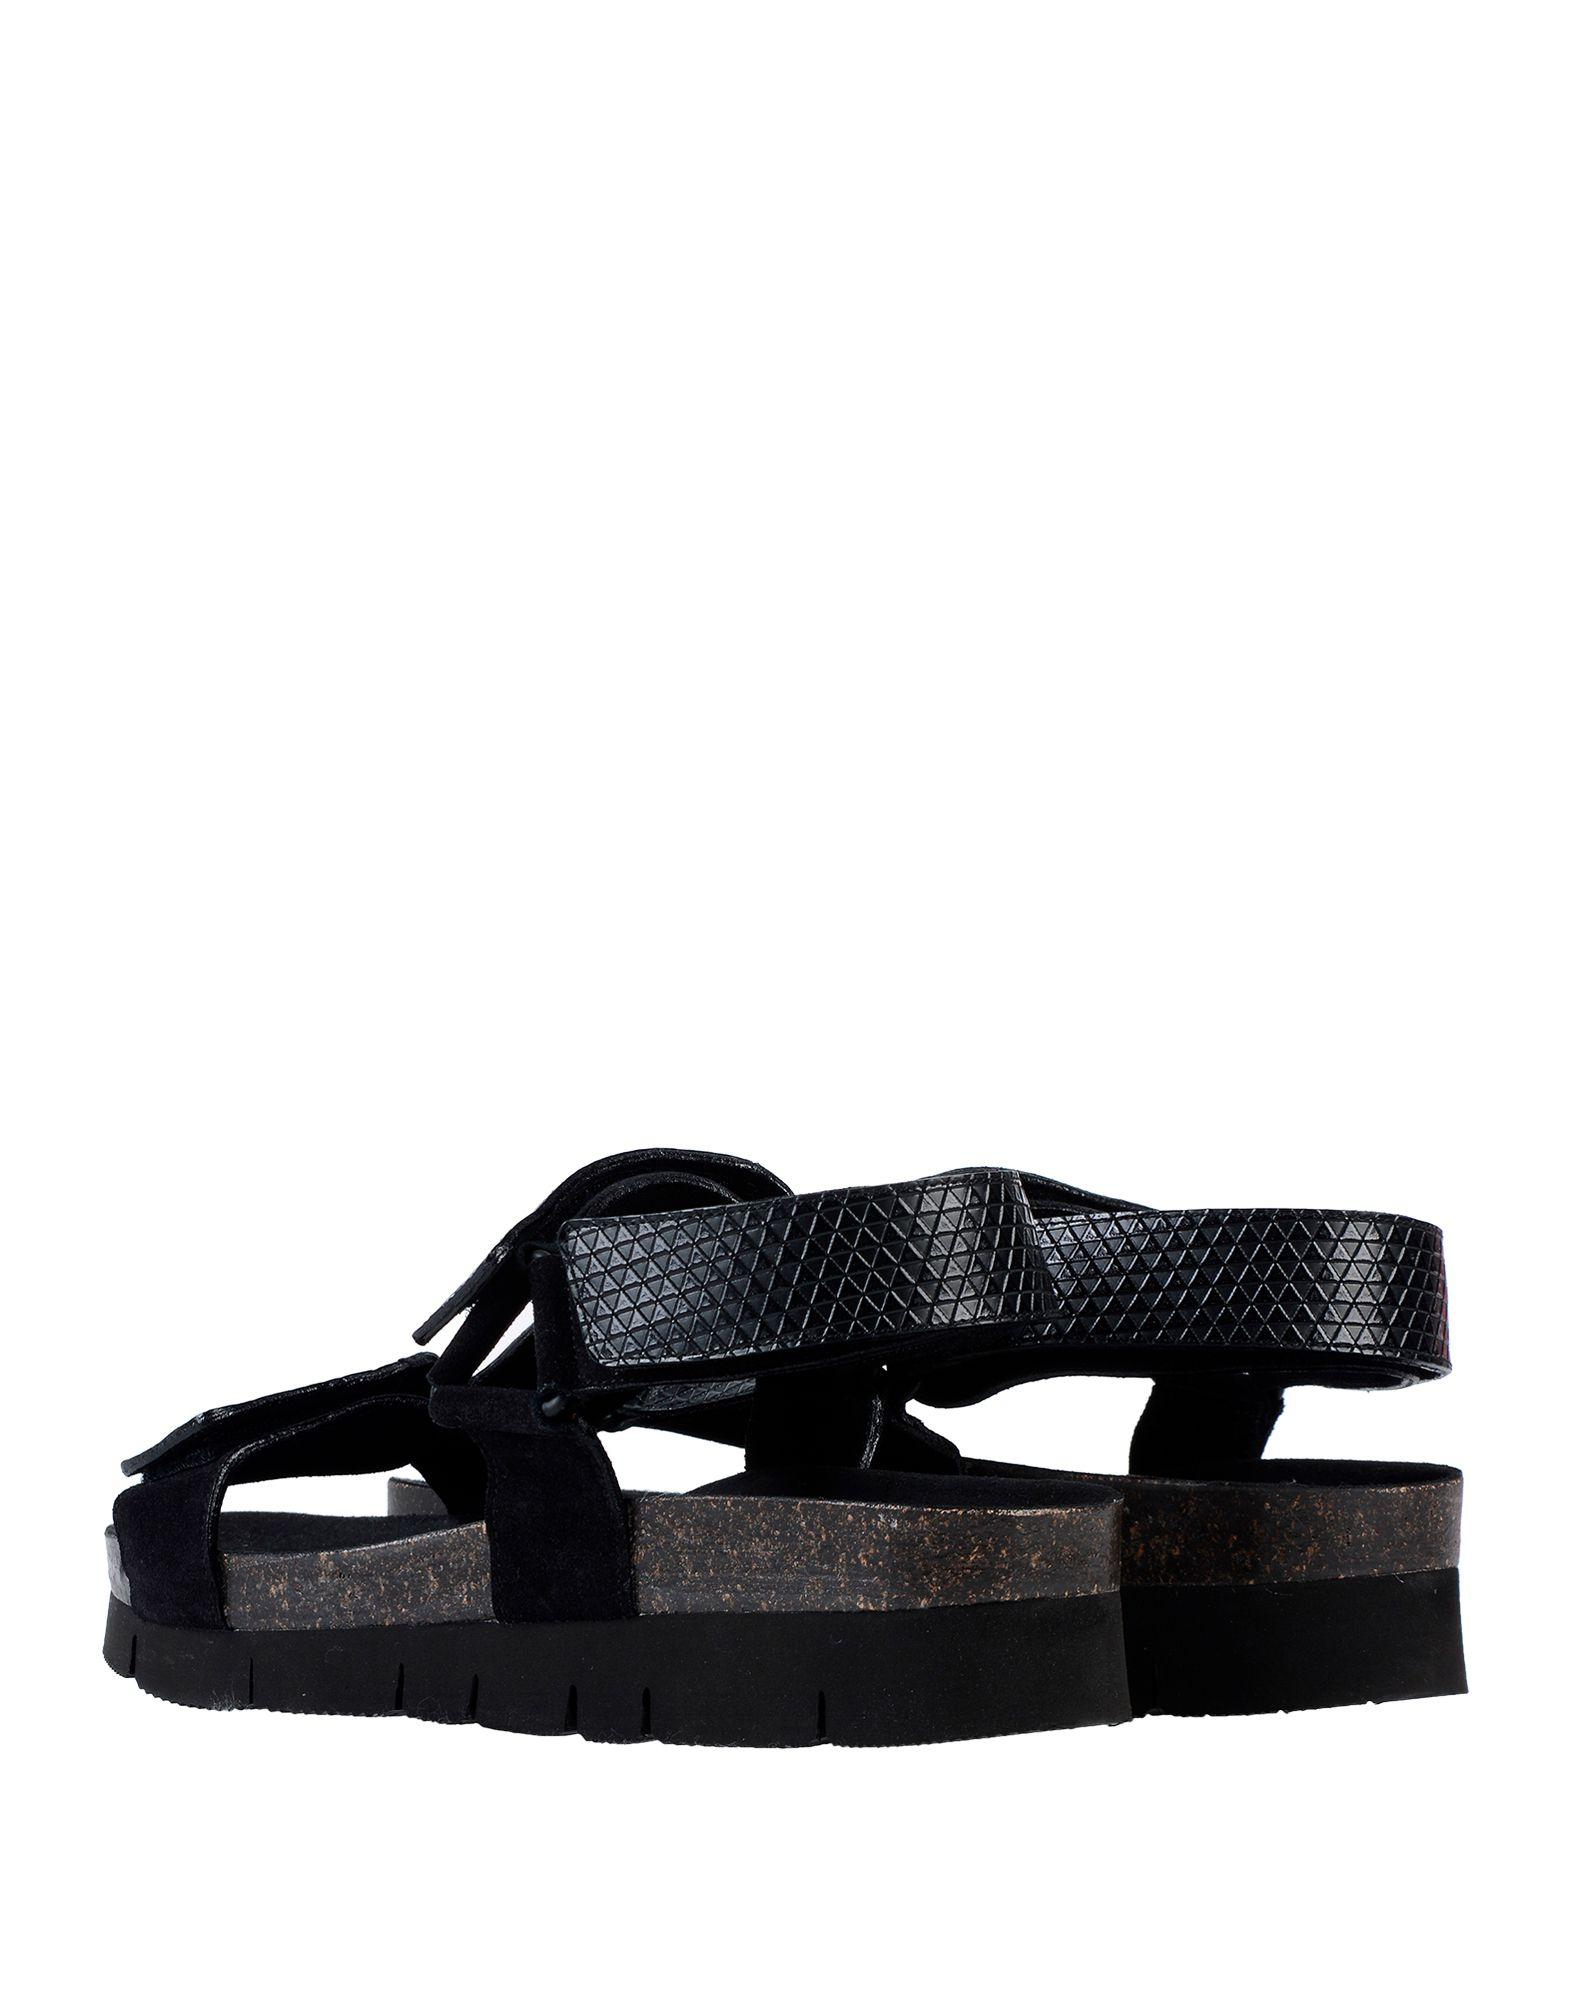 57e03d2865c288 Lyst - Marc Jacobs Sandals in Black for Men